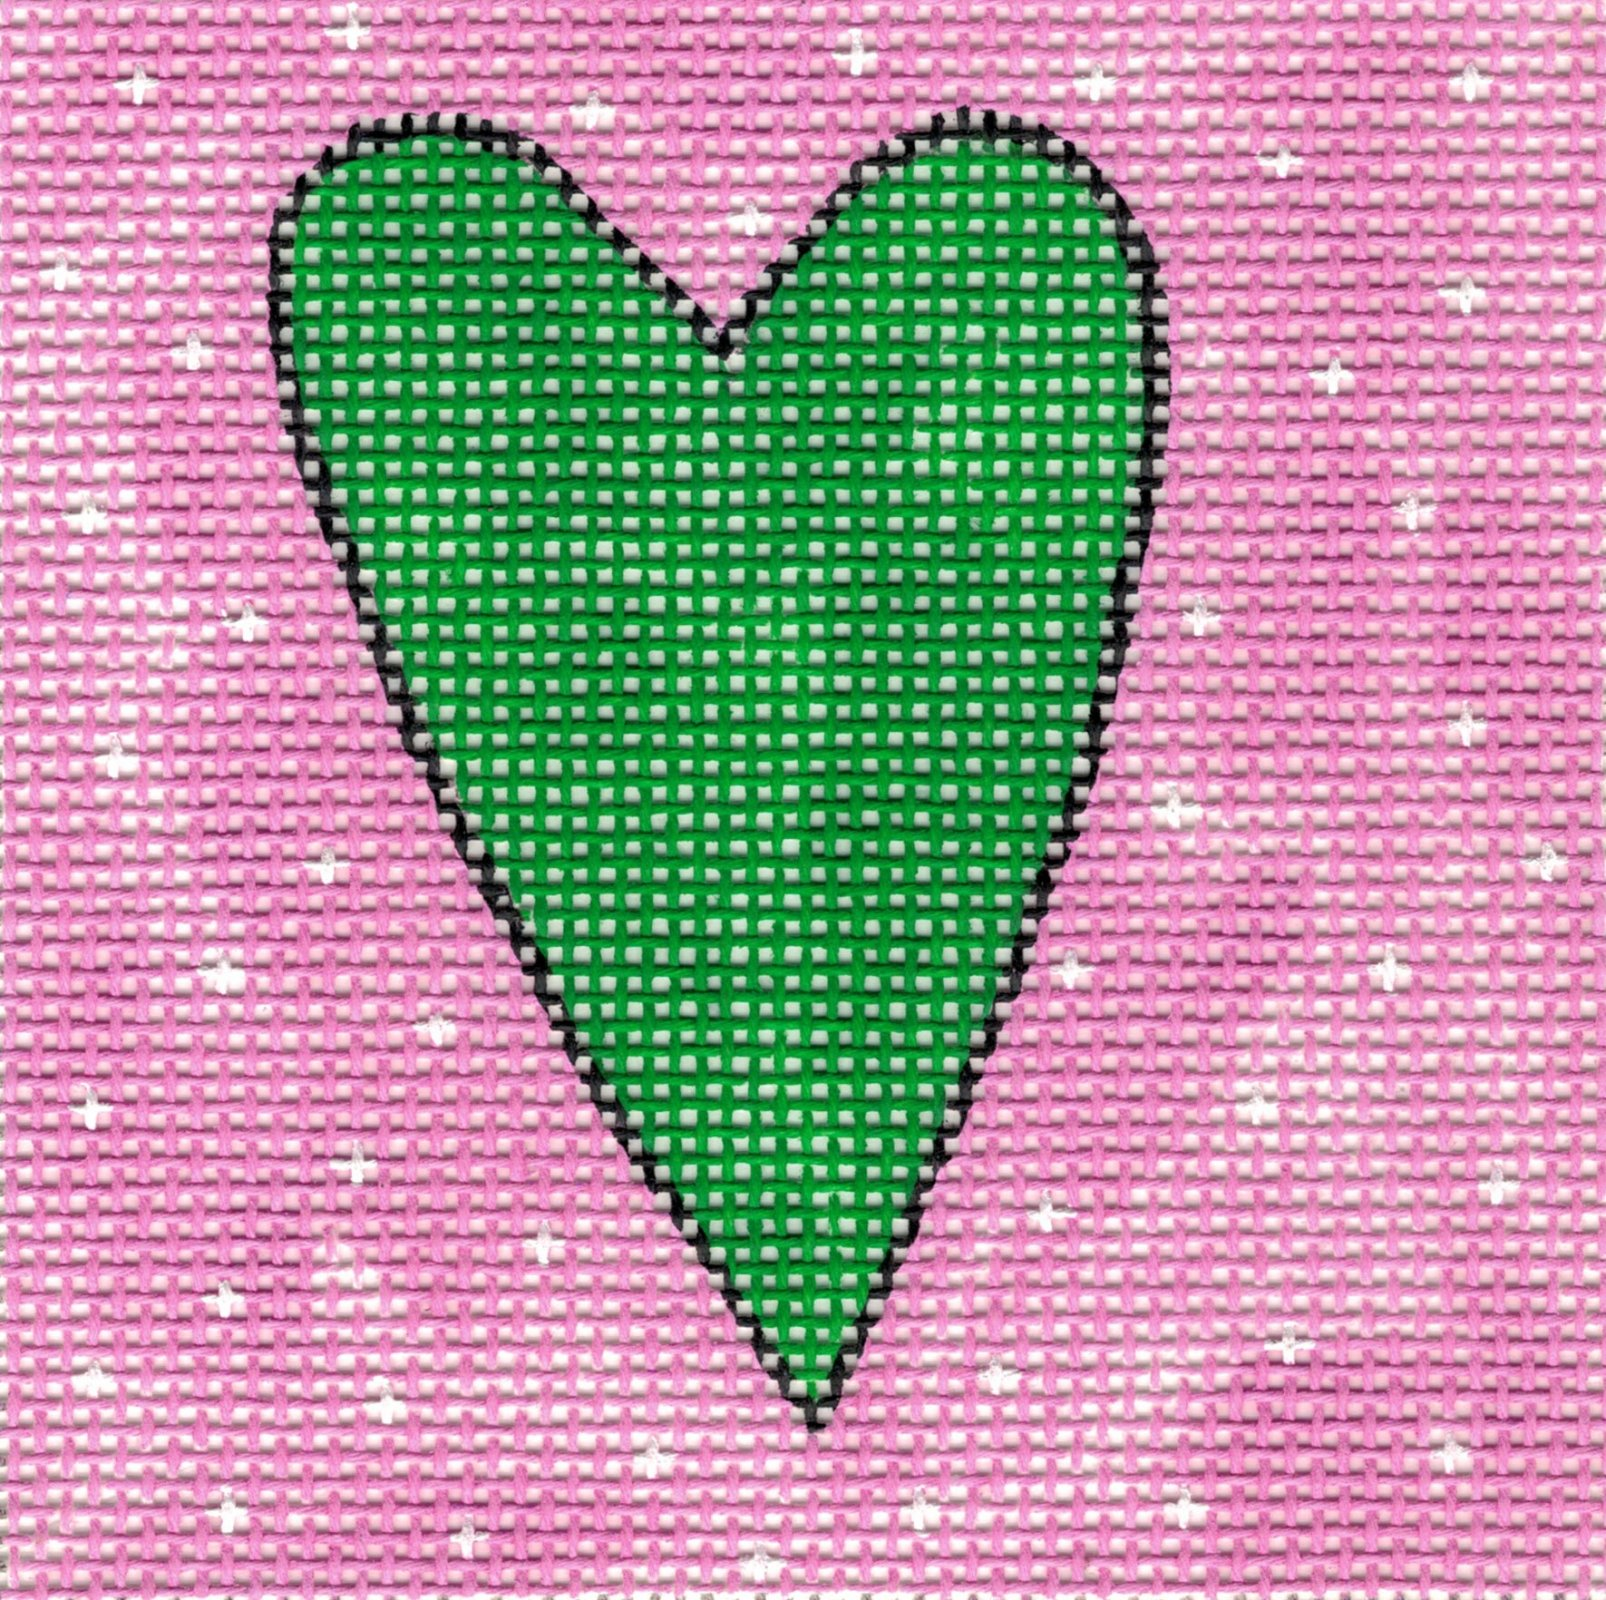 Green Heart on Pink with White Stars - 10M